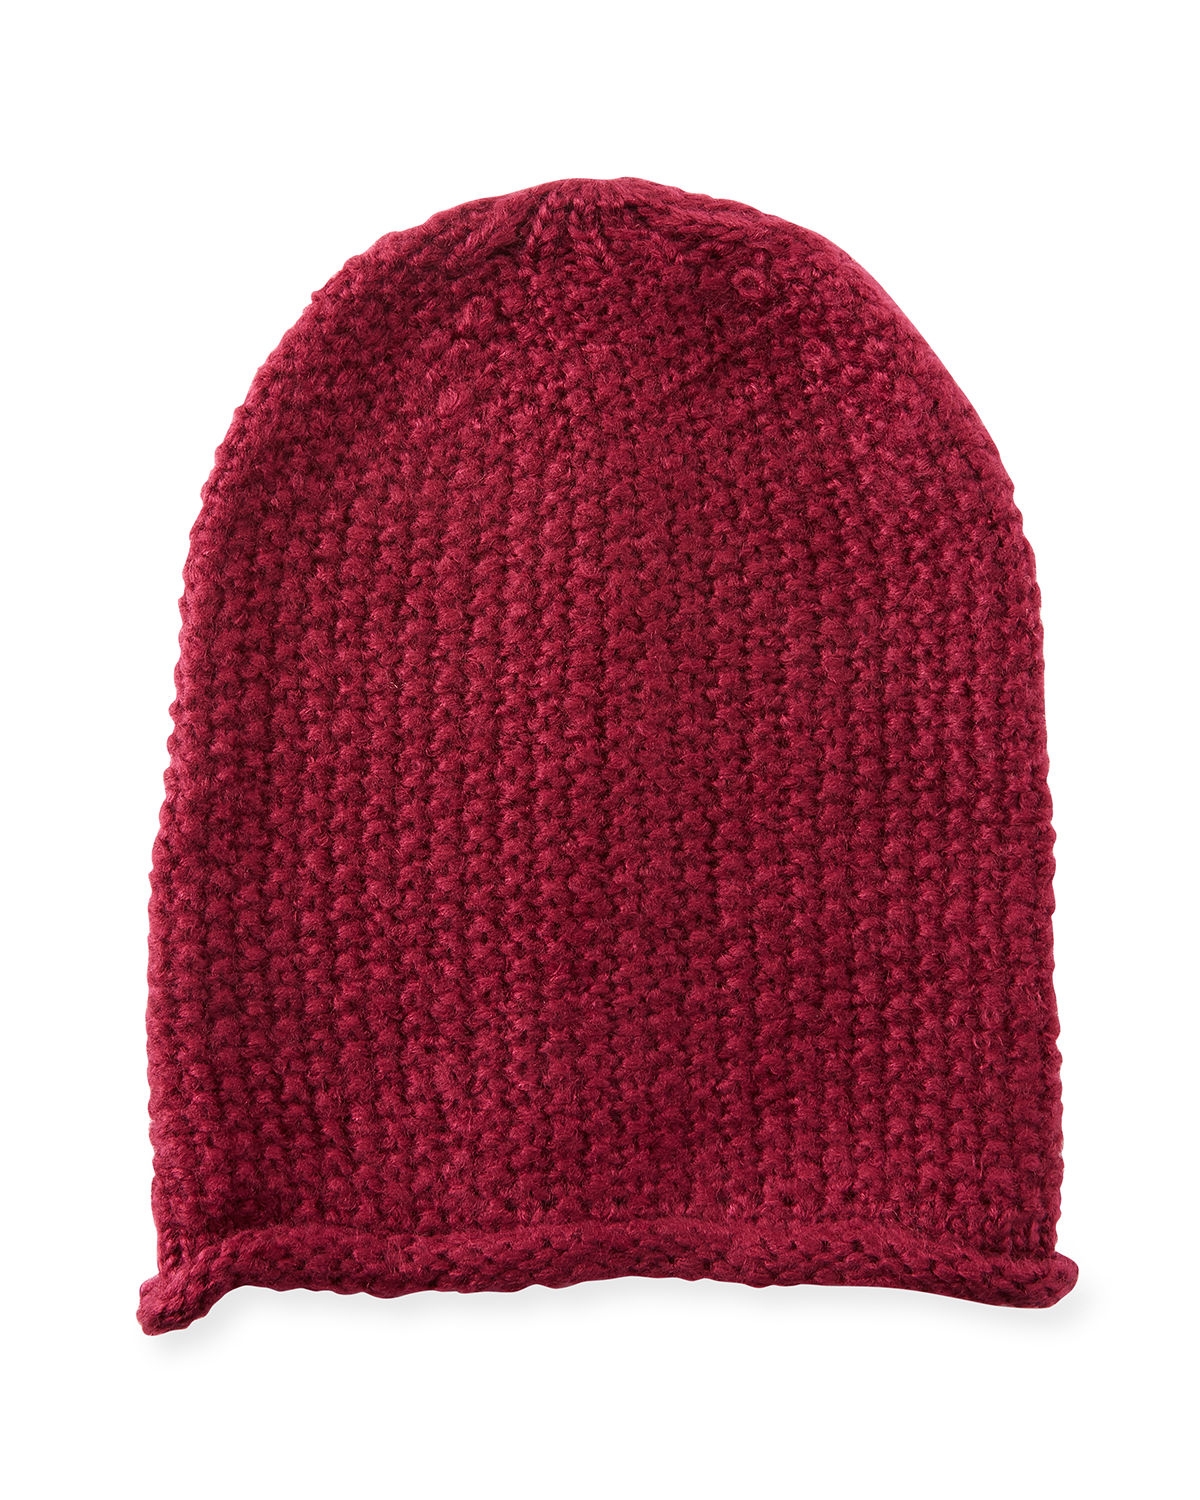 Simple Solid Slouchy Beanie Hat